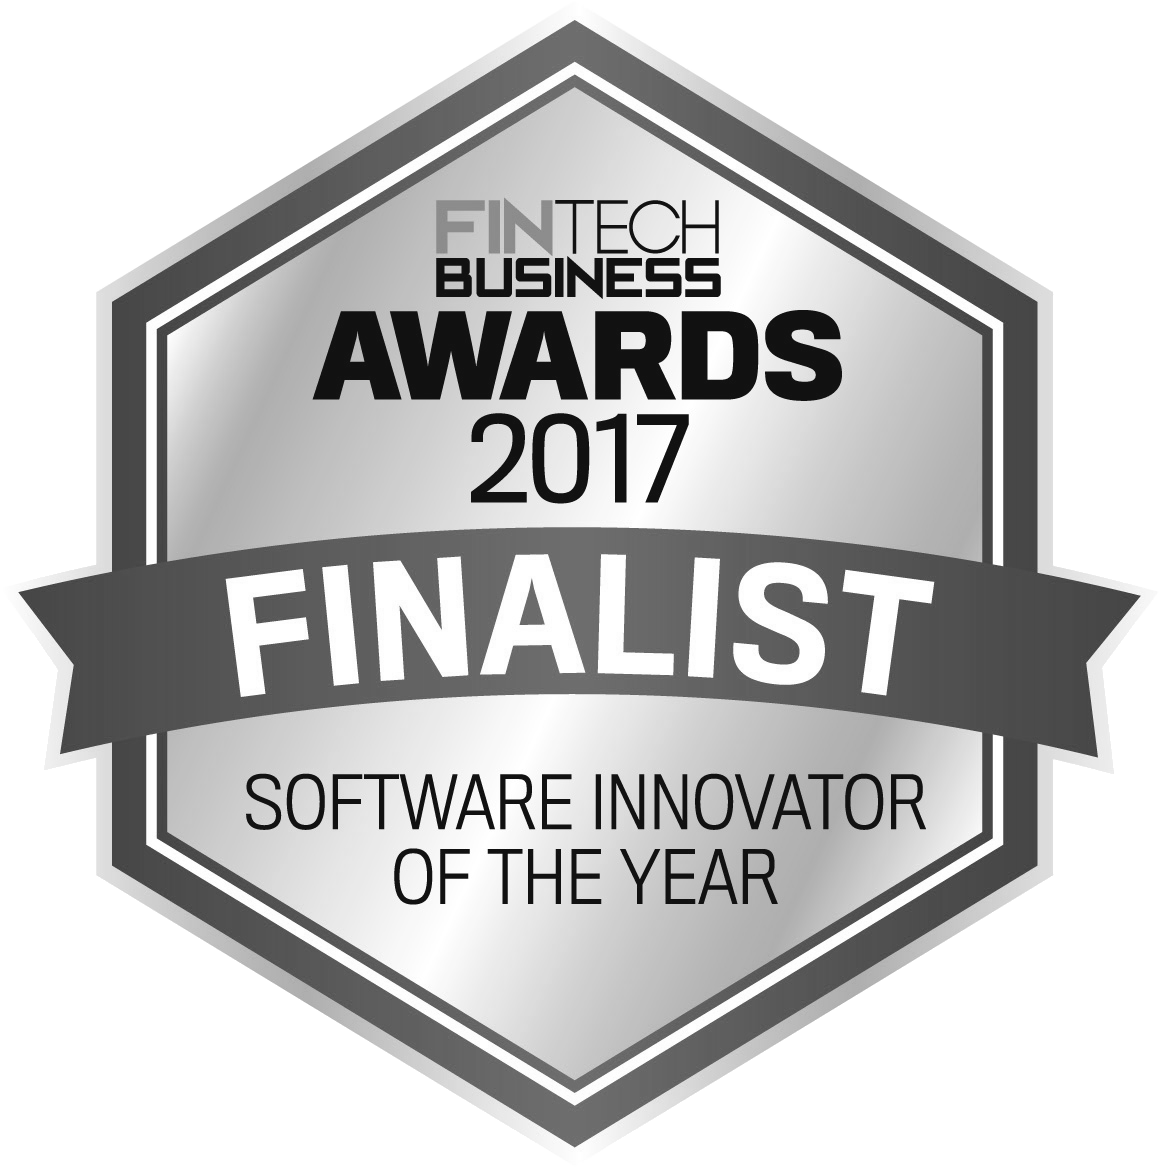 Fintech Business Awards